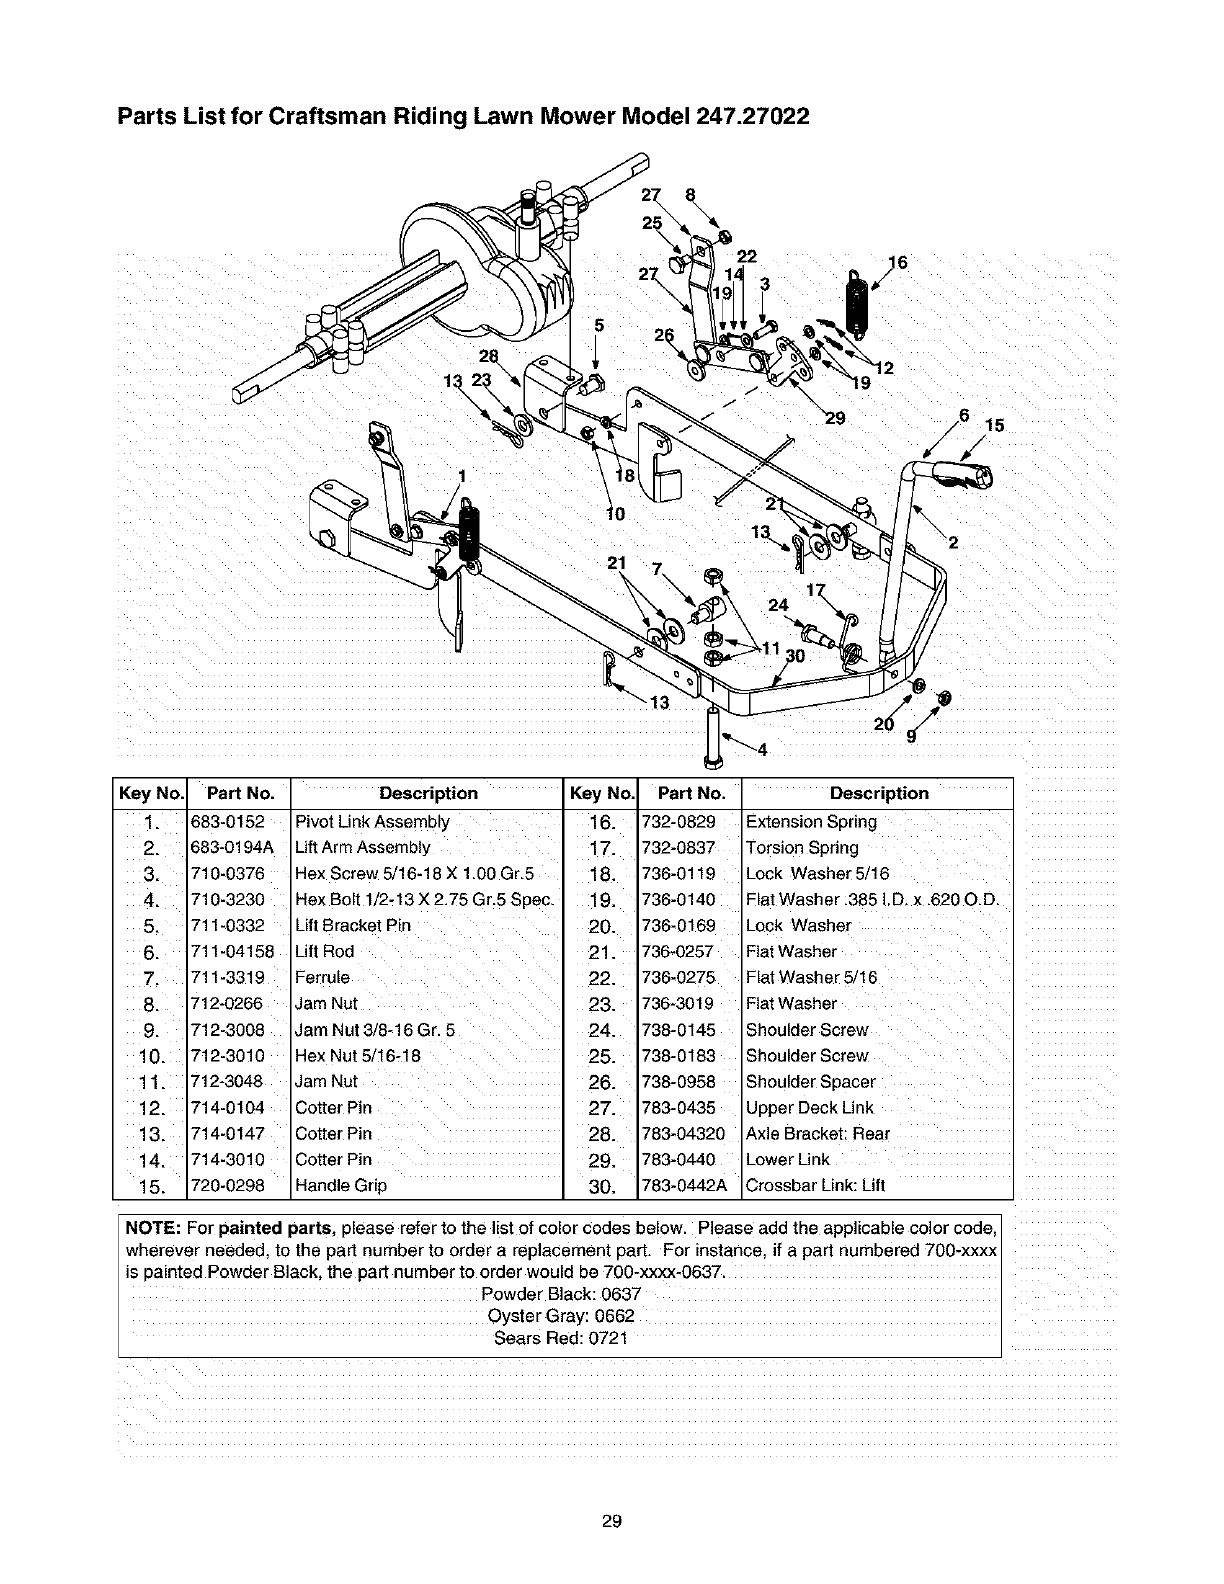 Craftsman Riding Lawn Mower Parts Diagram Page 29 Of Craftsman Lawn Mower 247 User Guide Of Craftsman Riding Lawn Mower Parts Diagram